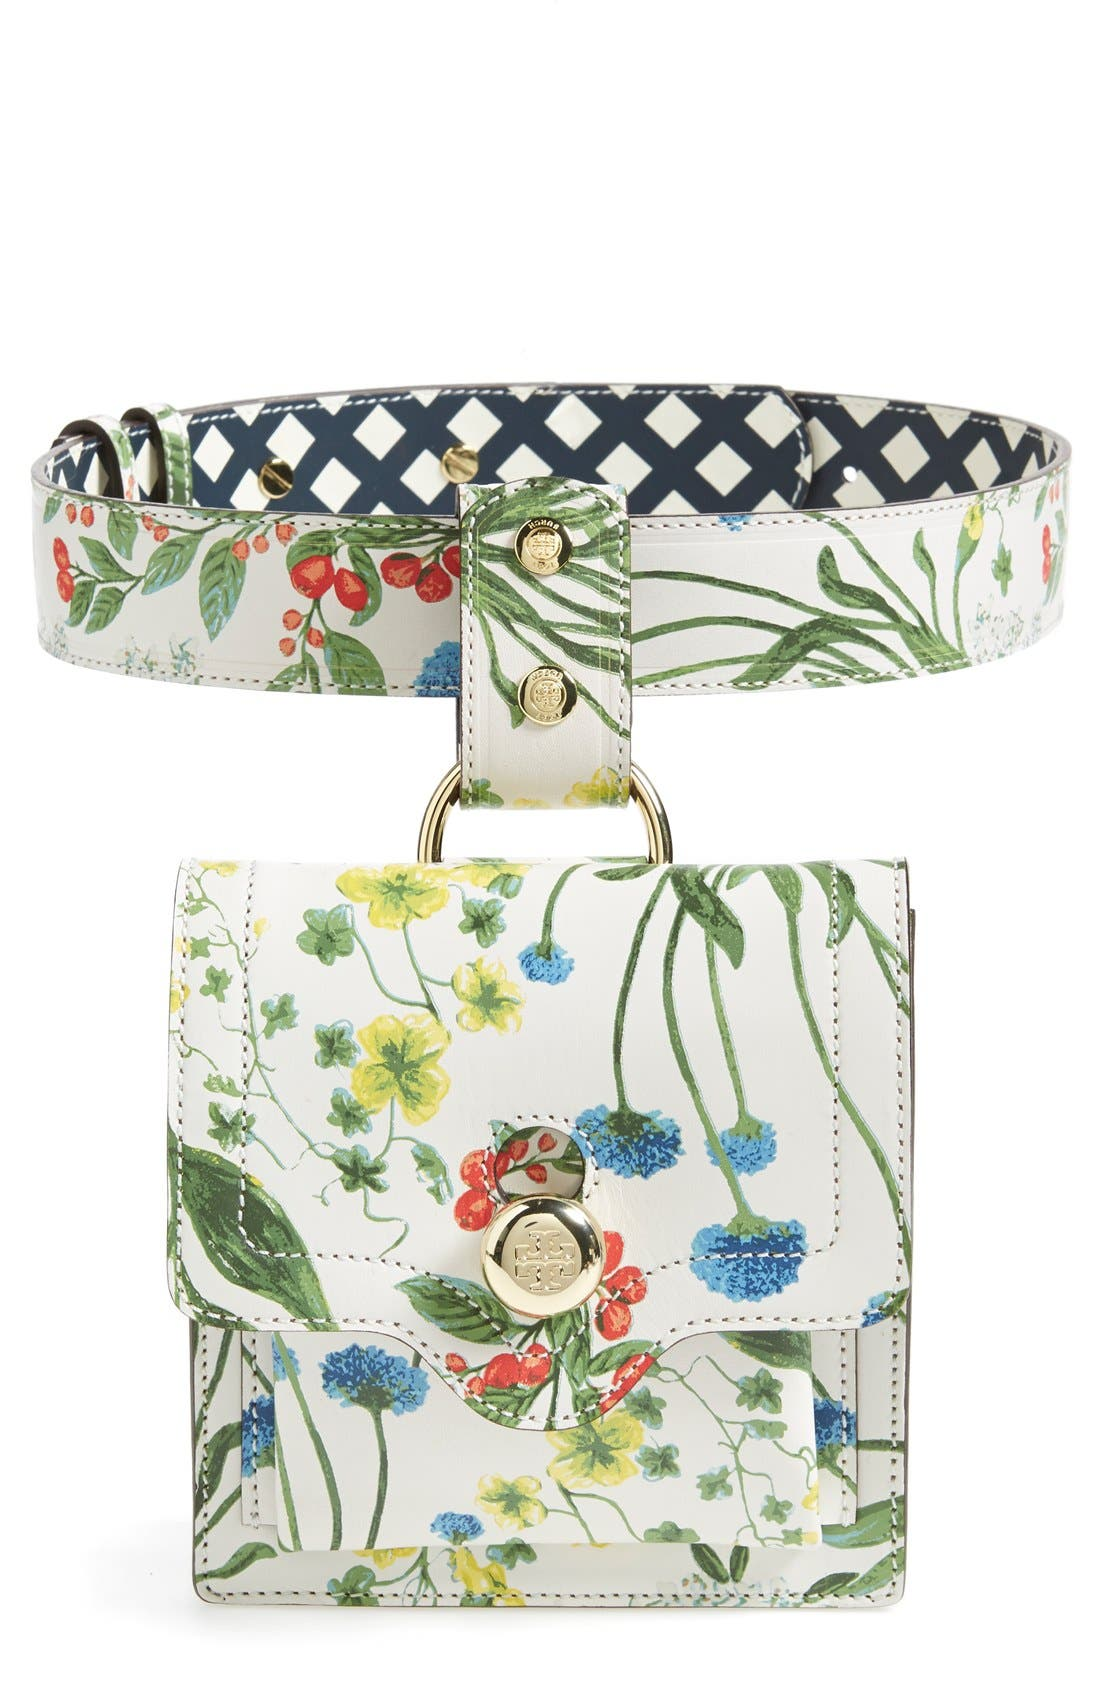 Alternate Image 1 Selected - Tory Burch Print Leather Belt Bag